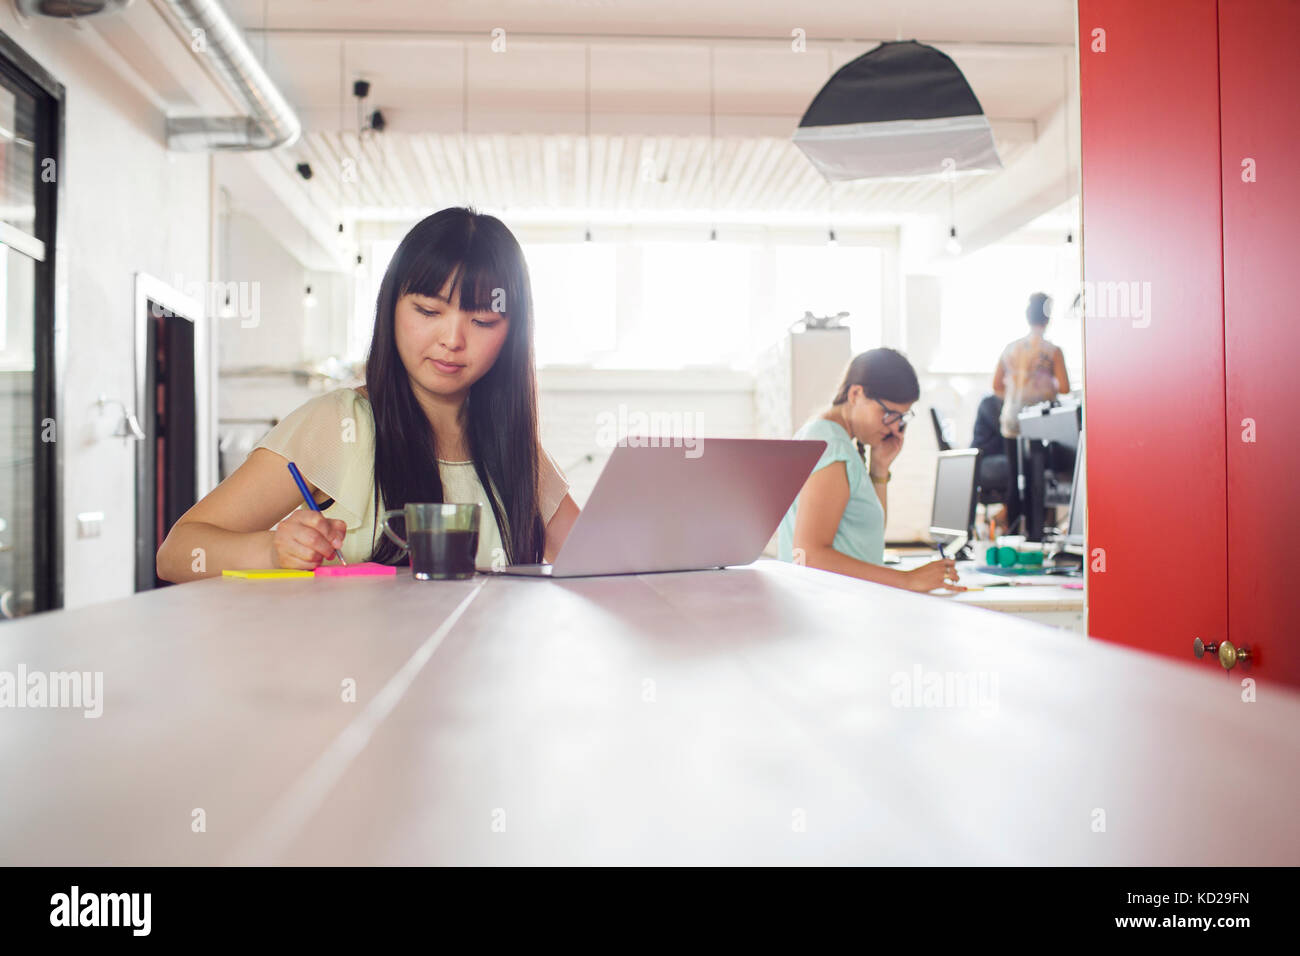 Two women working at office, third standing by window in background - Stock Image